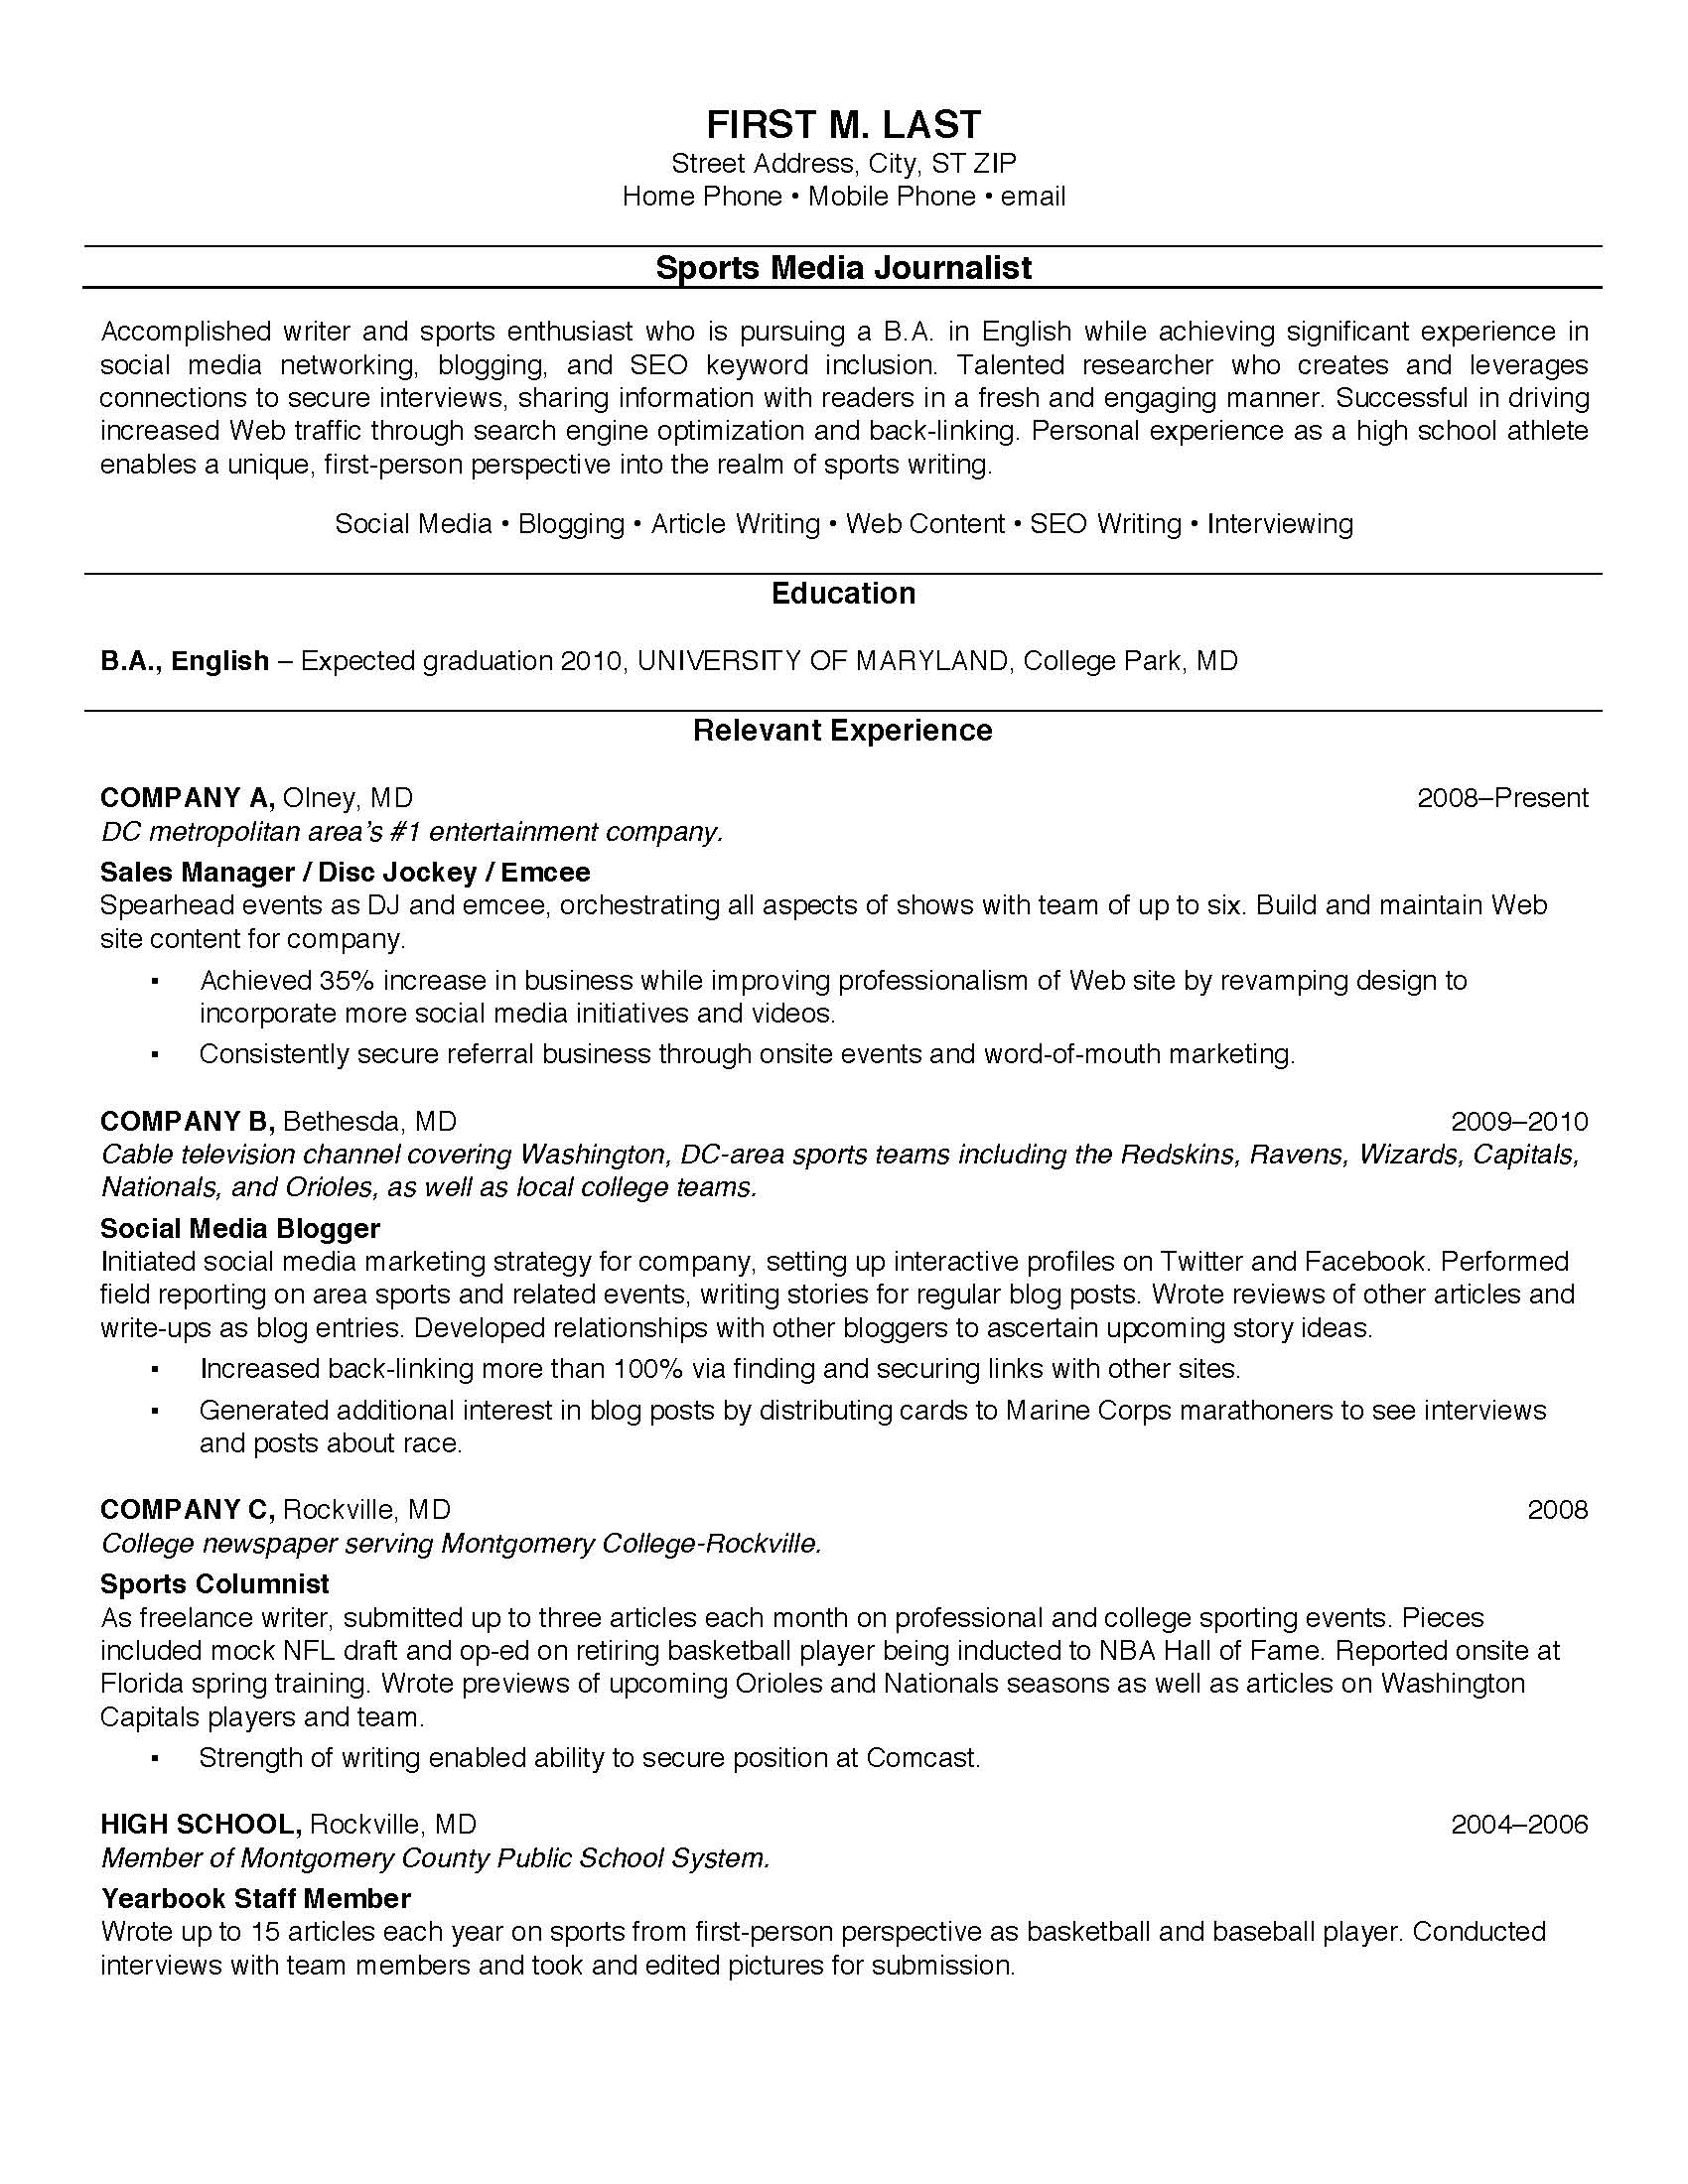 college student resume skills examples truck driver objective electronics quality Resume College Resume Skills Examples